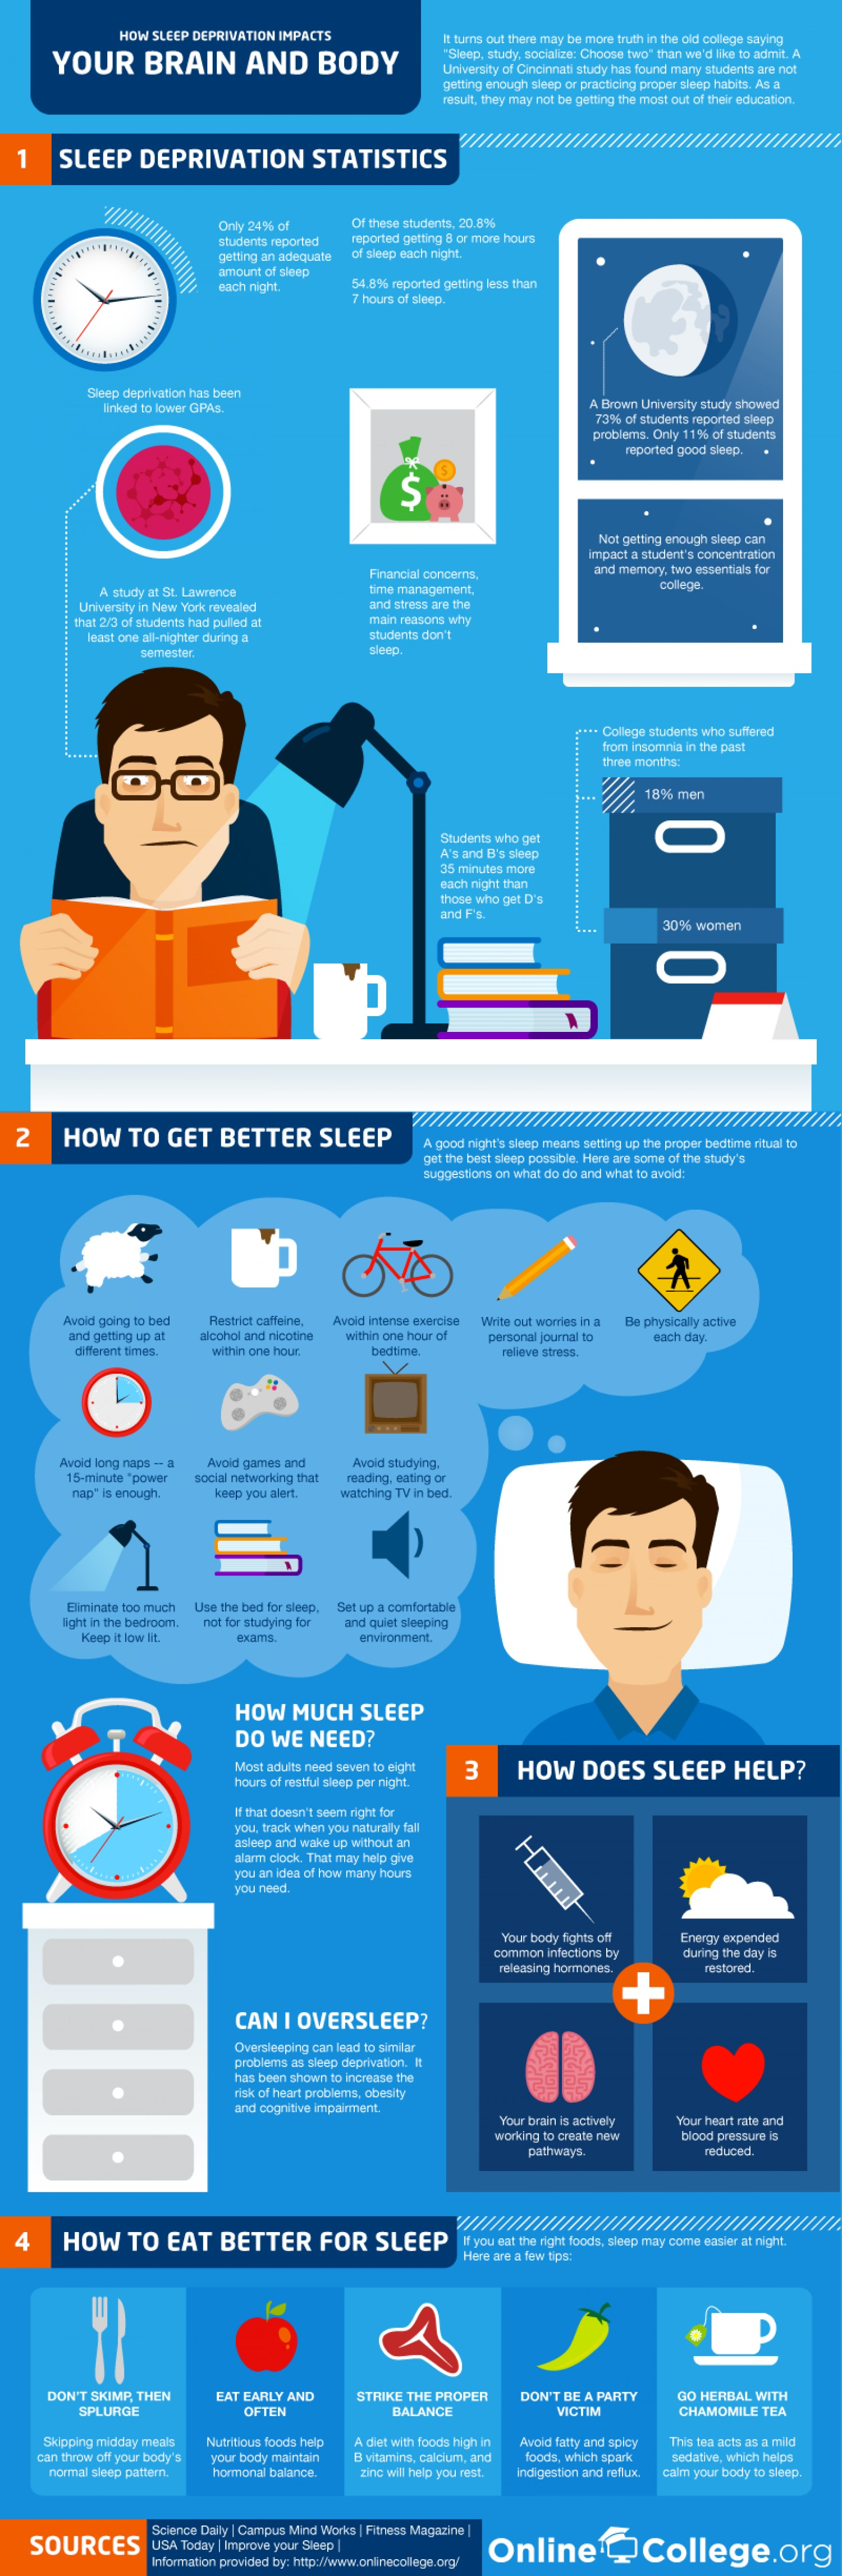 how-sleep-deprivation-affects-your-brain--body_5029163019d71_w1500